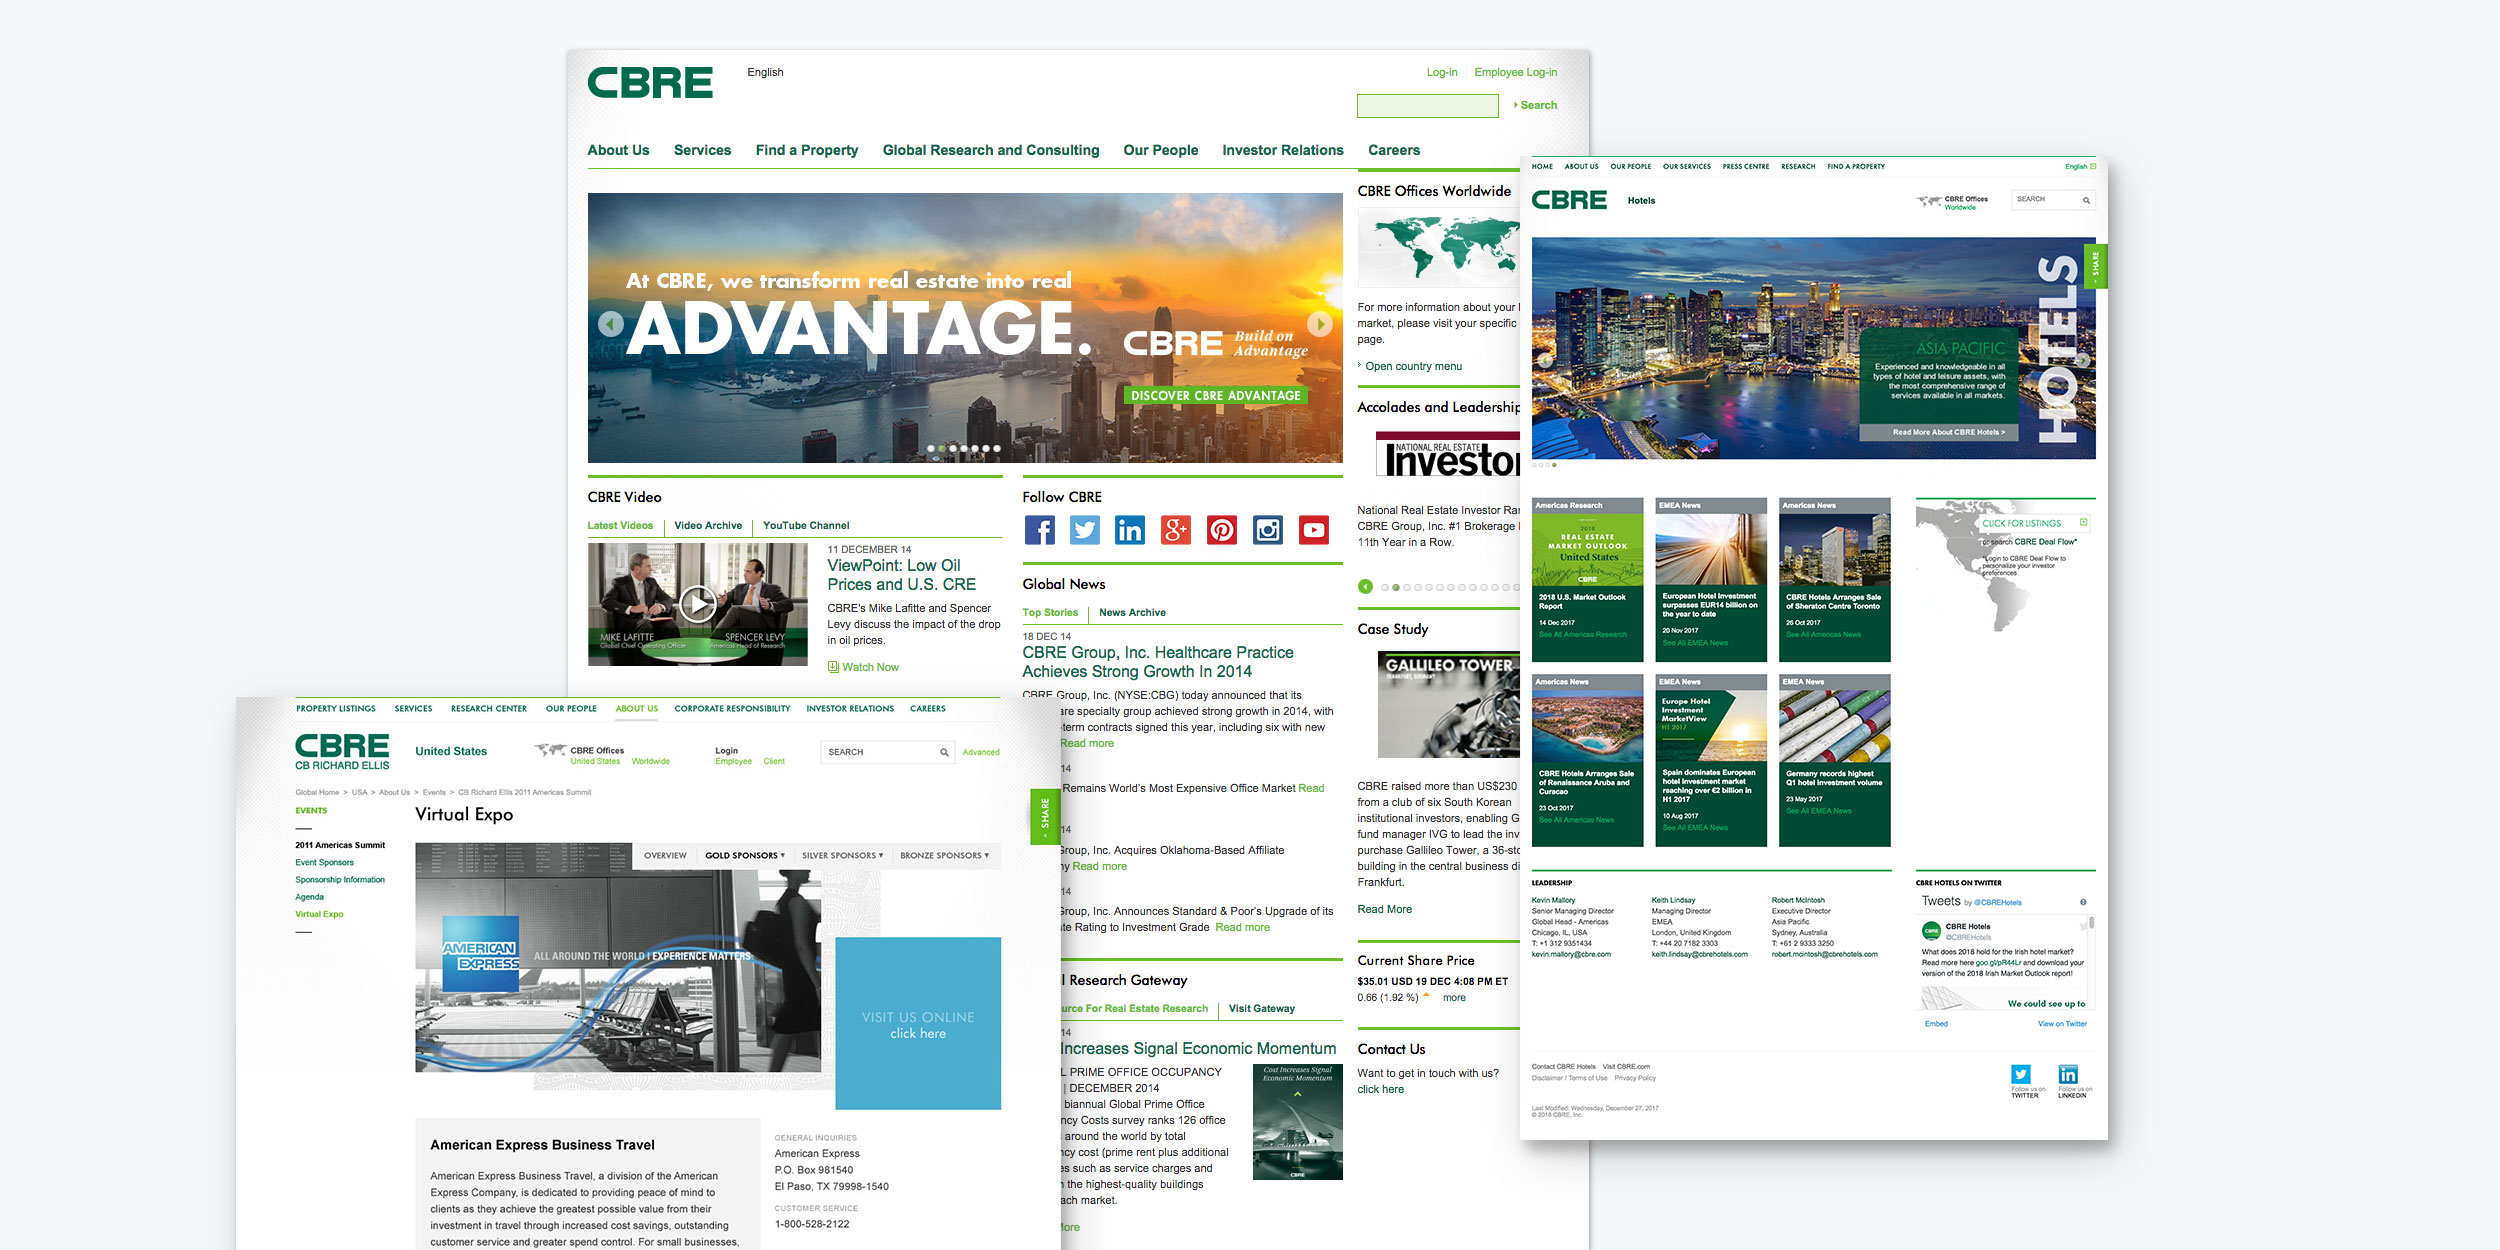 CBRE digital design system